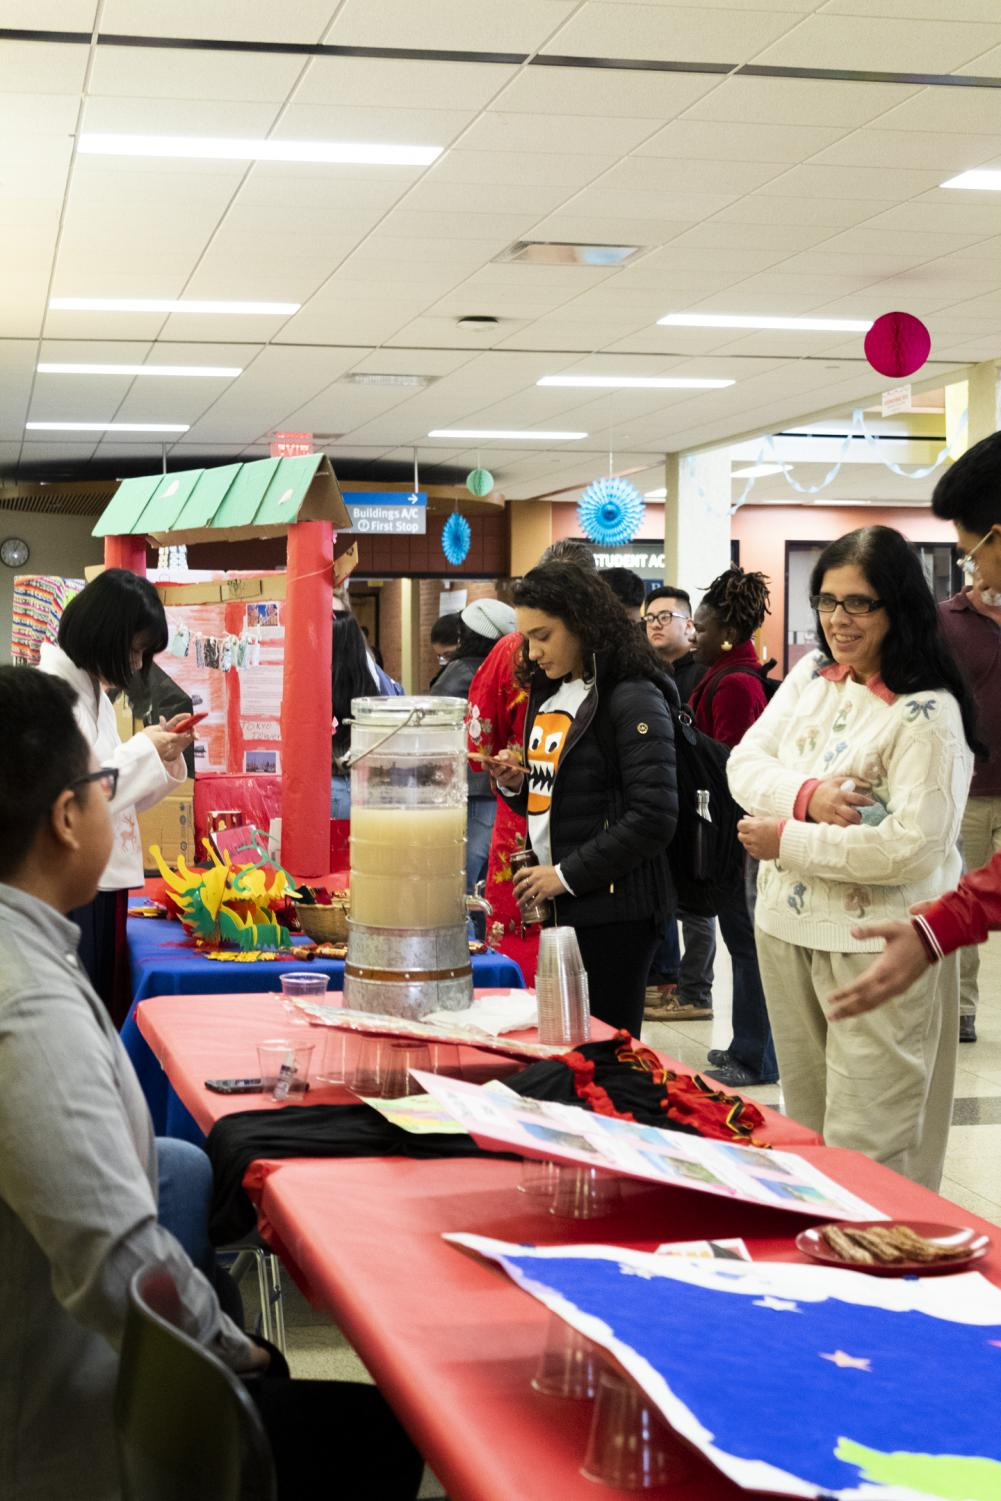 As a part of International Week, on November 15, a few clubs and groups gather for a street fair.